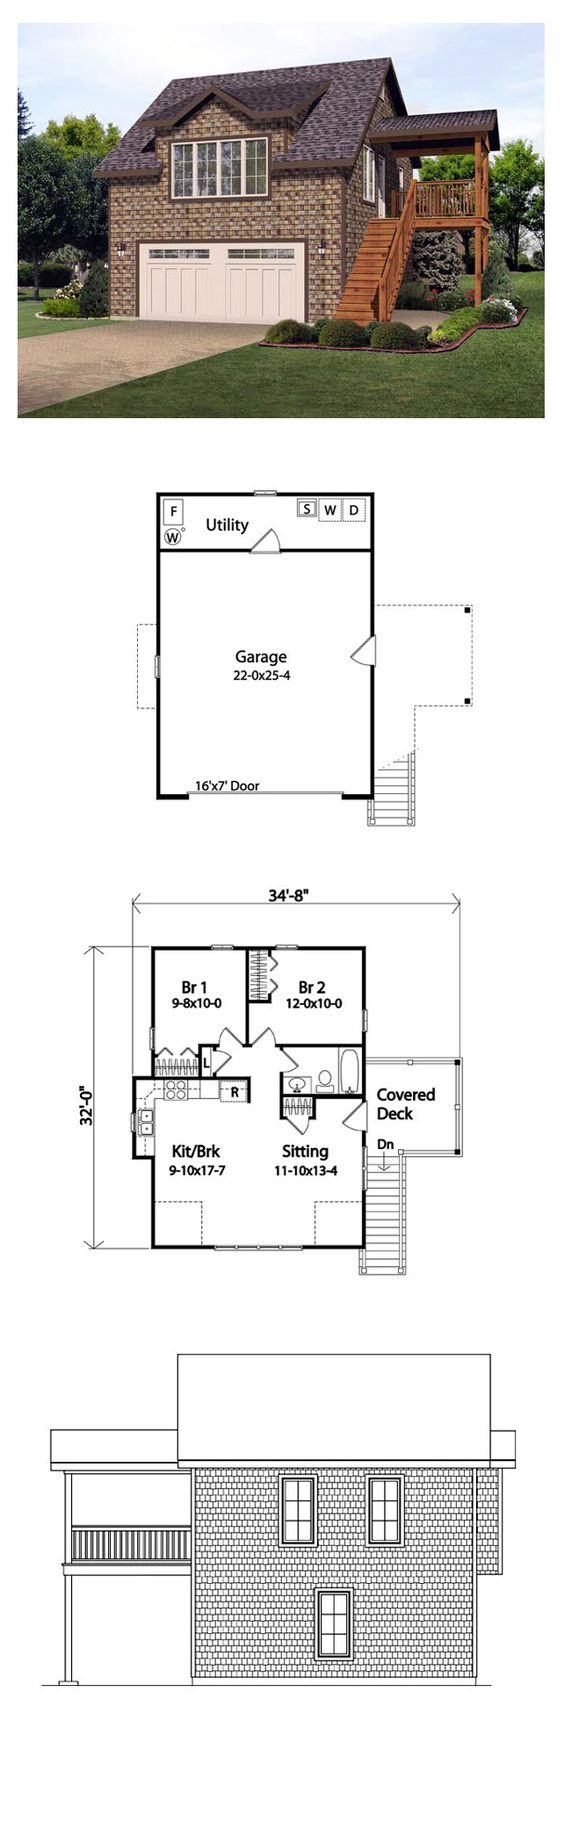 Garage Plan 45121 | Total Living Area: 881 sq. ft., 2 bedrooms & 1 bathroom. #carriagehouse #garageapartmentplan